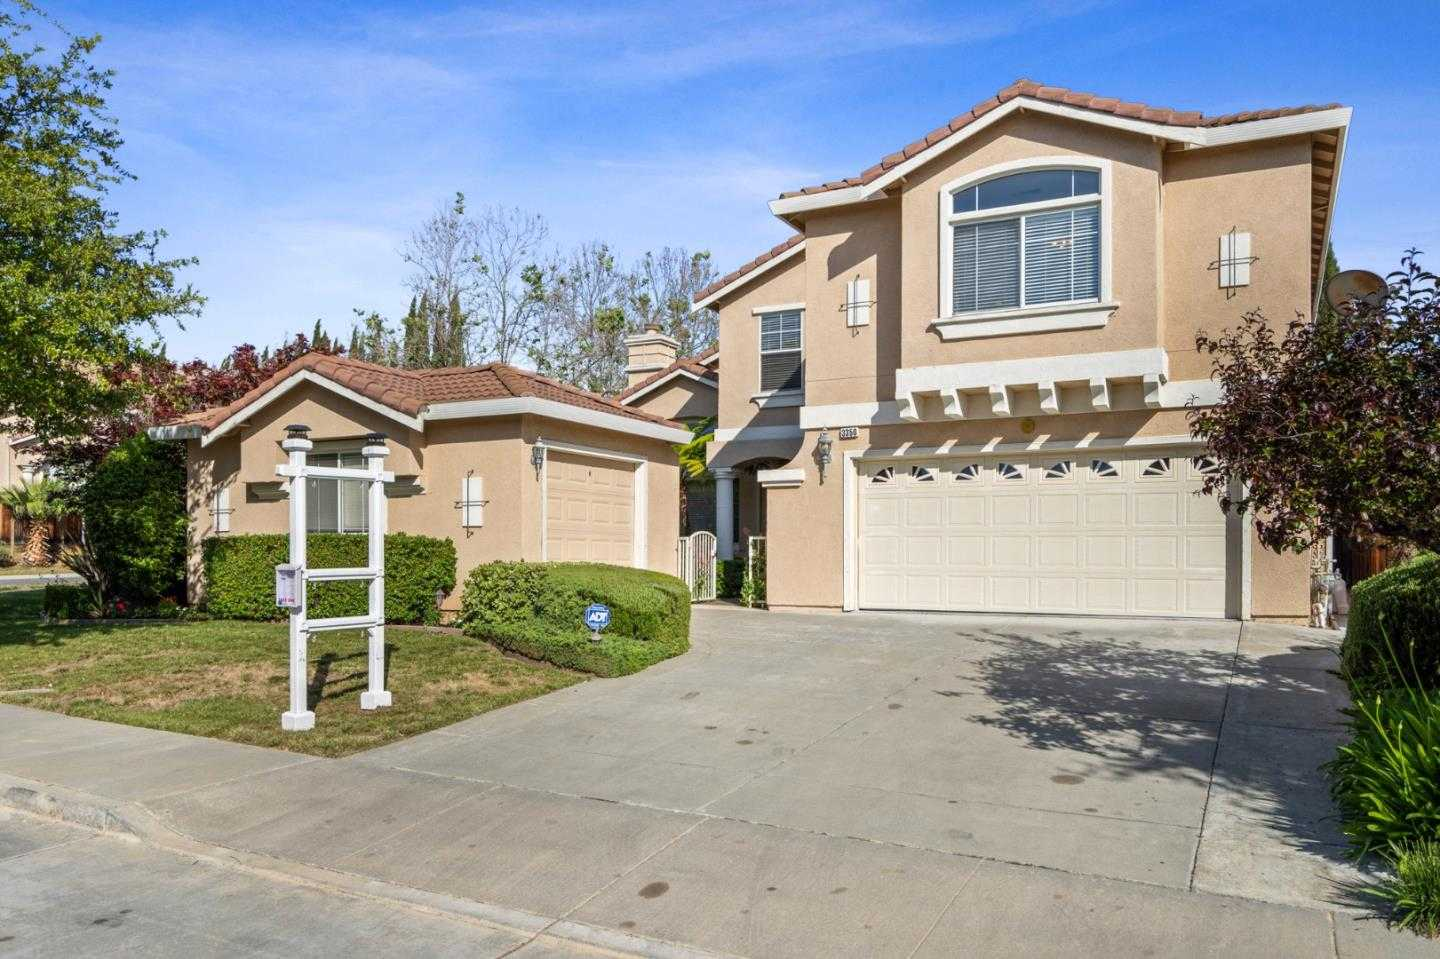 $1,868,000 - 4Br/3Ba -  for Sale in San Jose